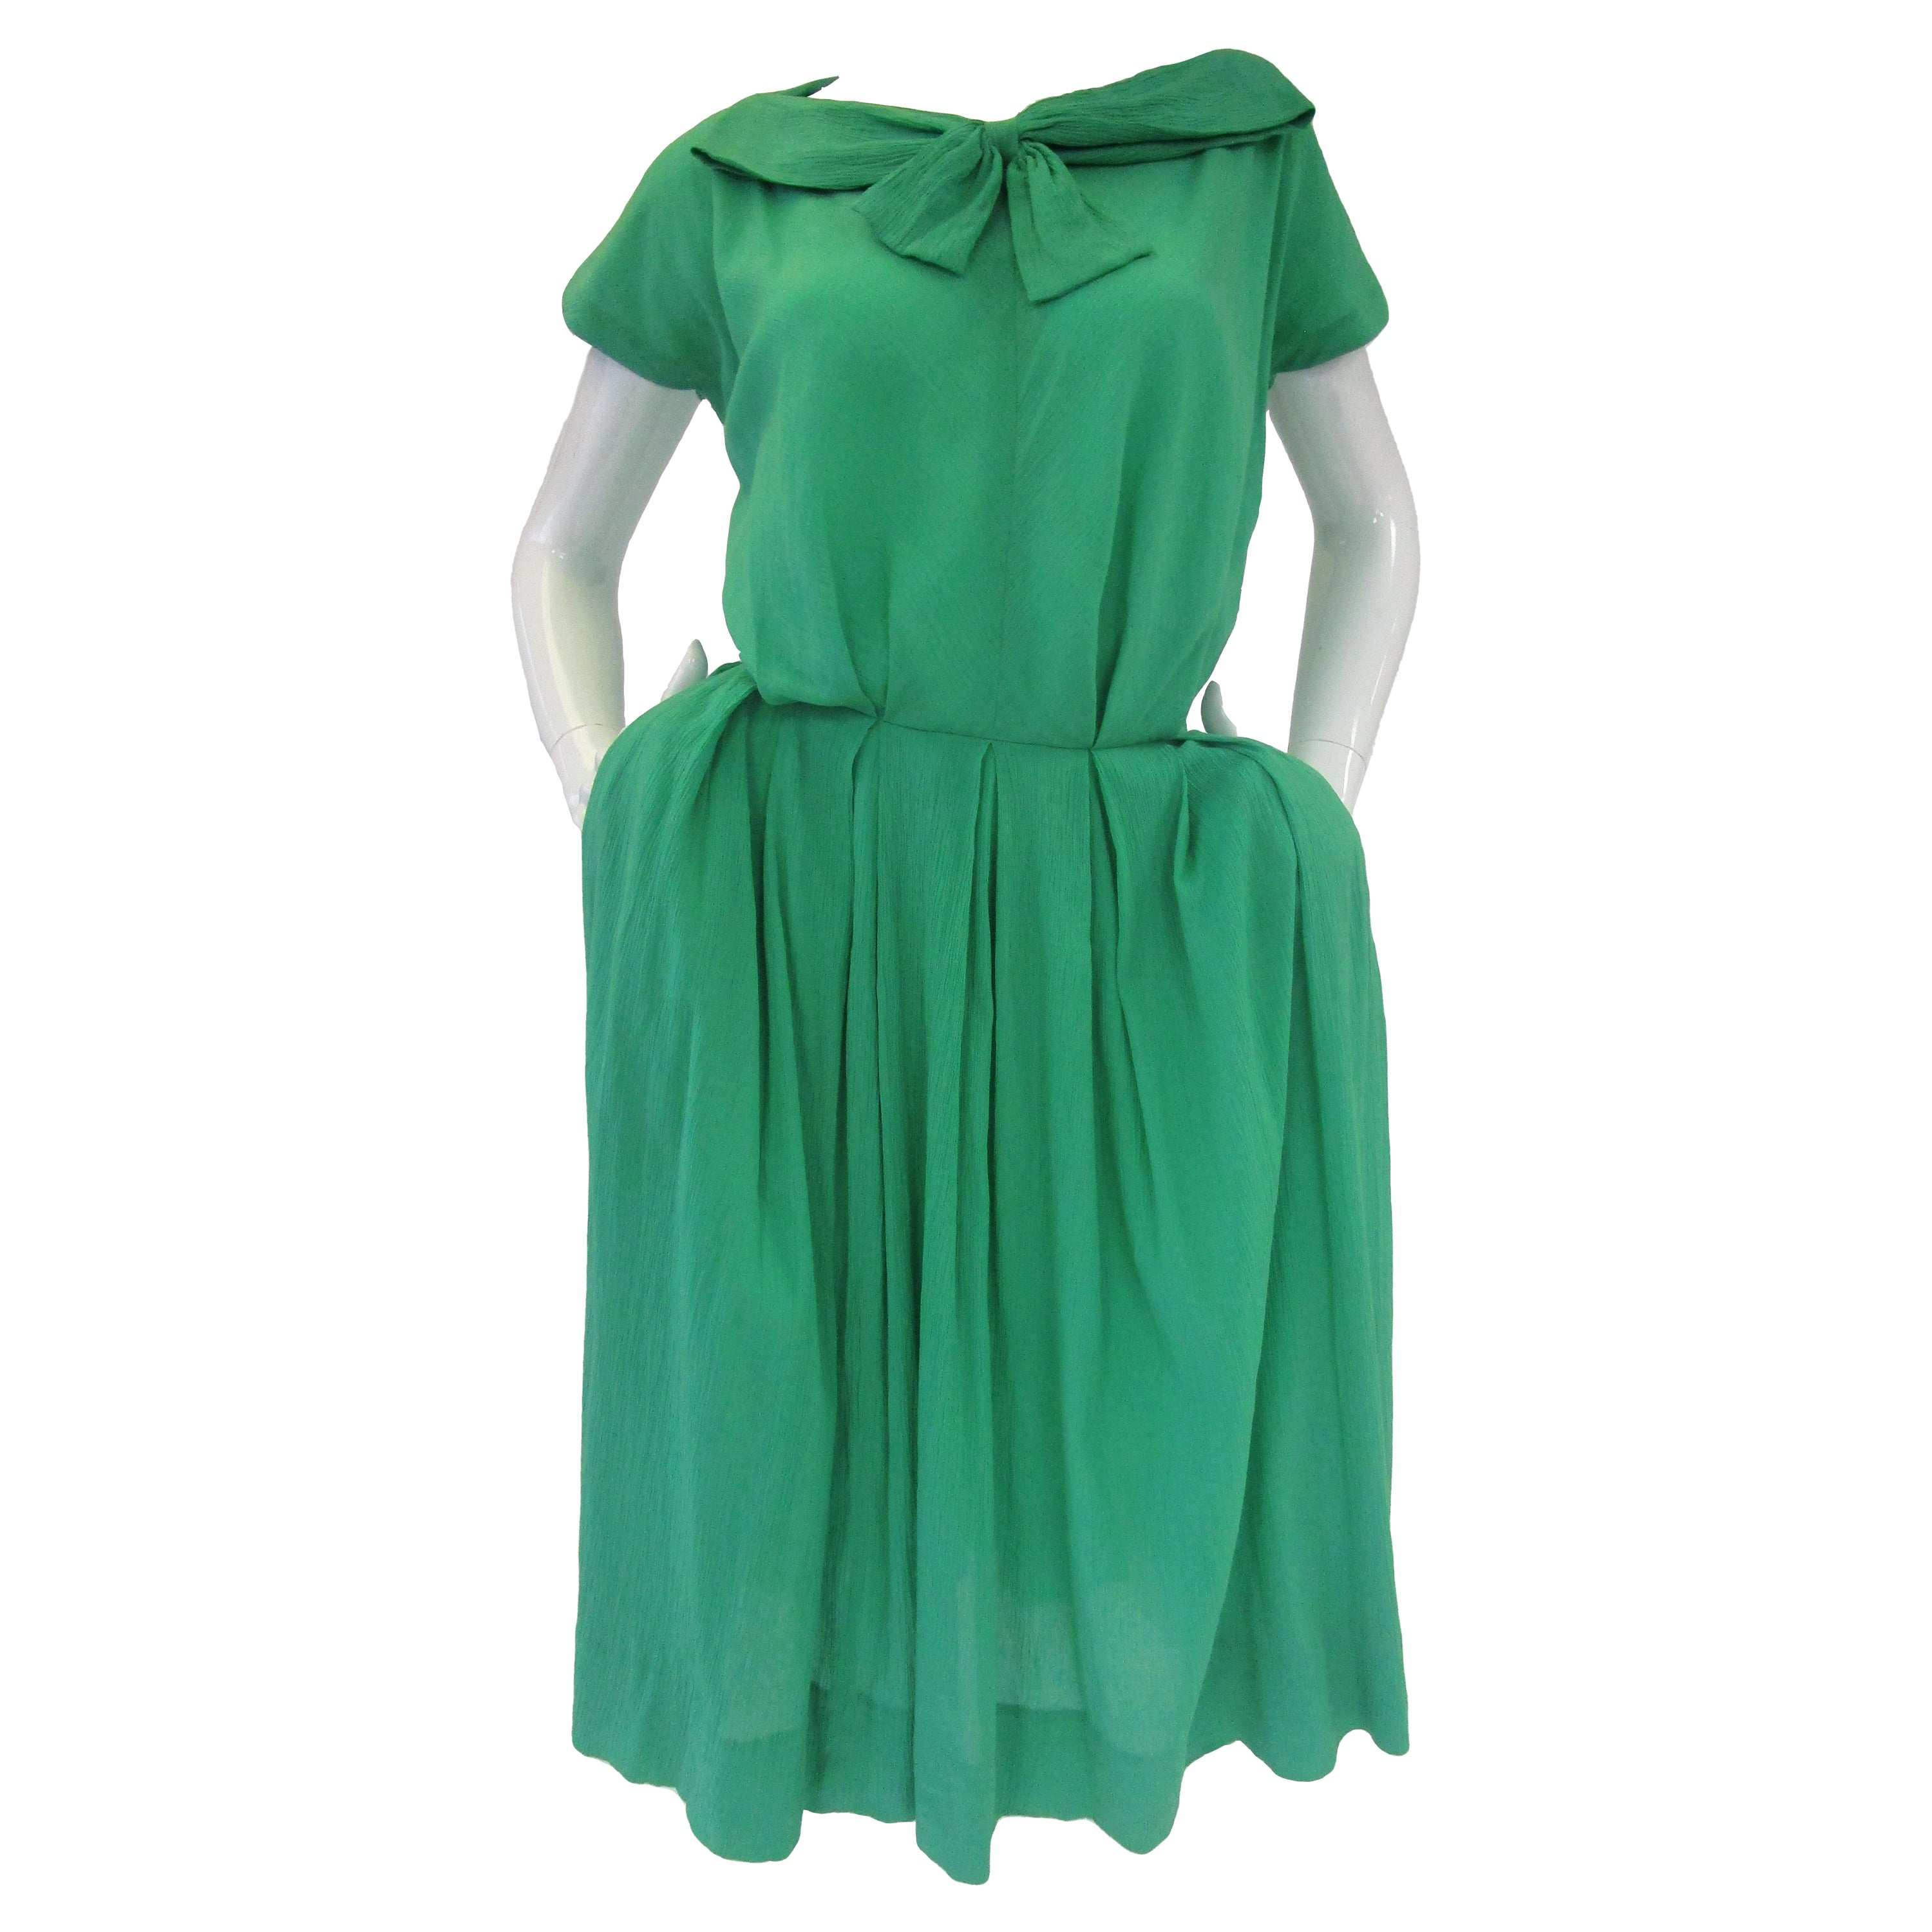 1950's Claire McCardell for Townley Kelly Green Crinkled Viscose Dress